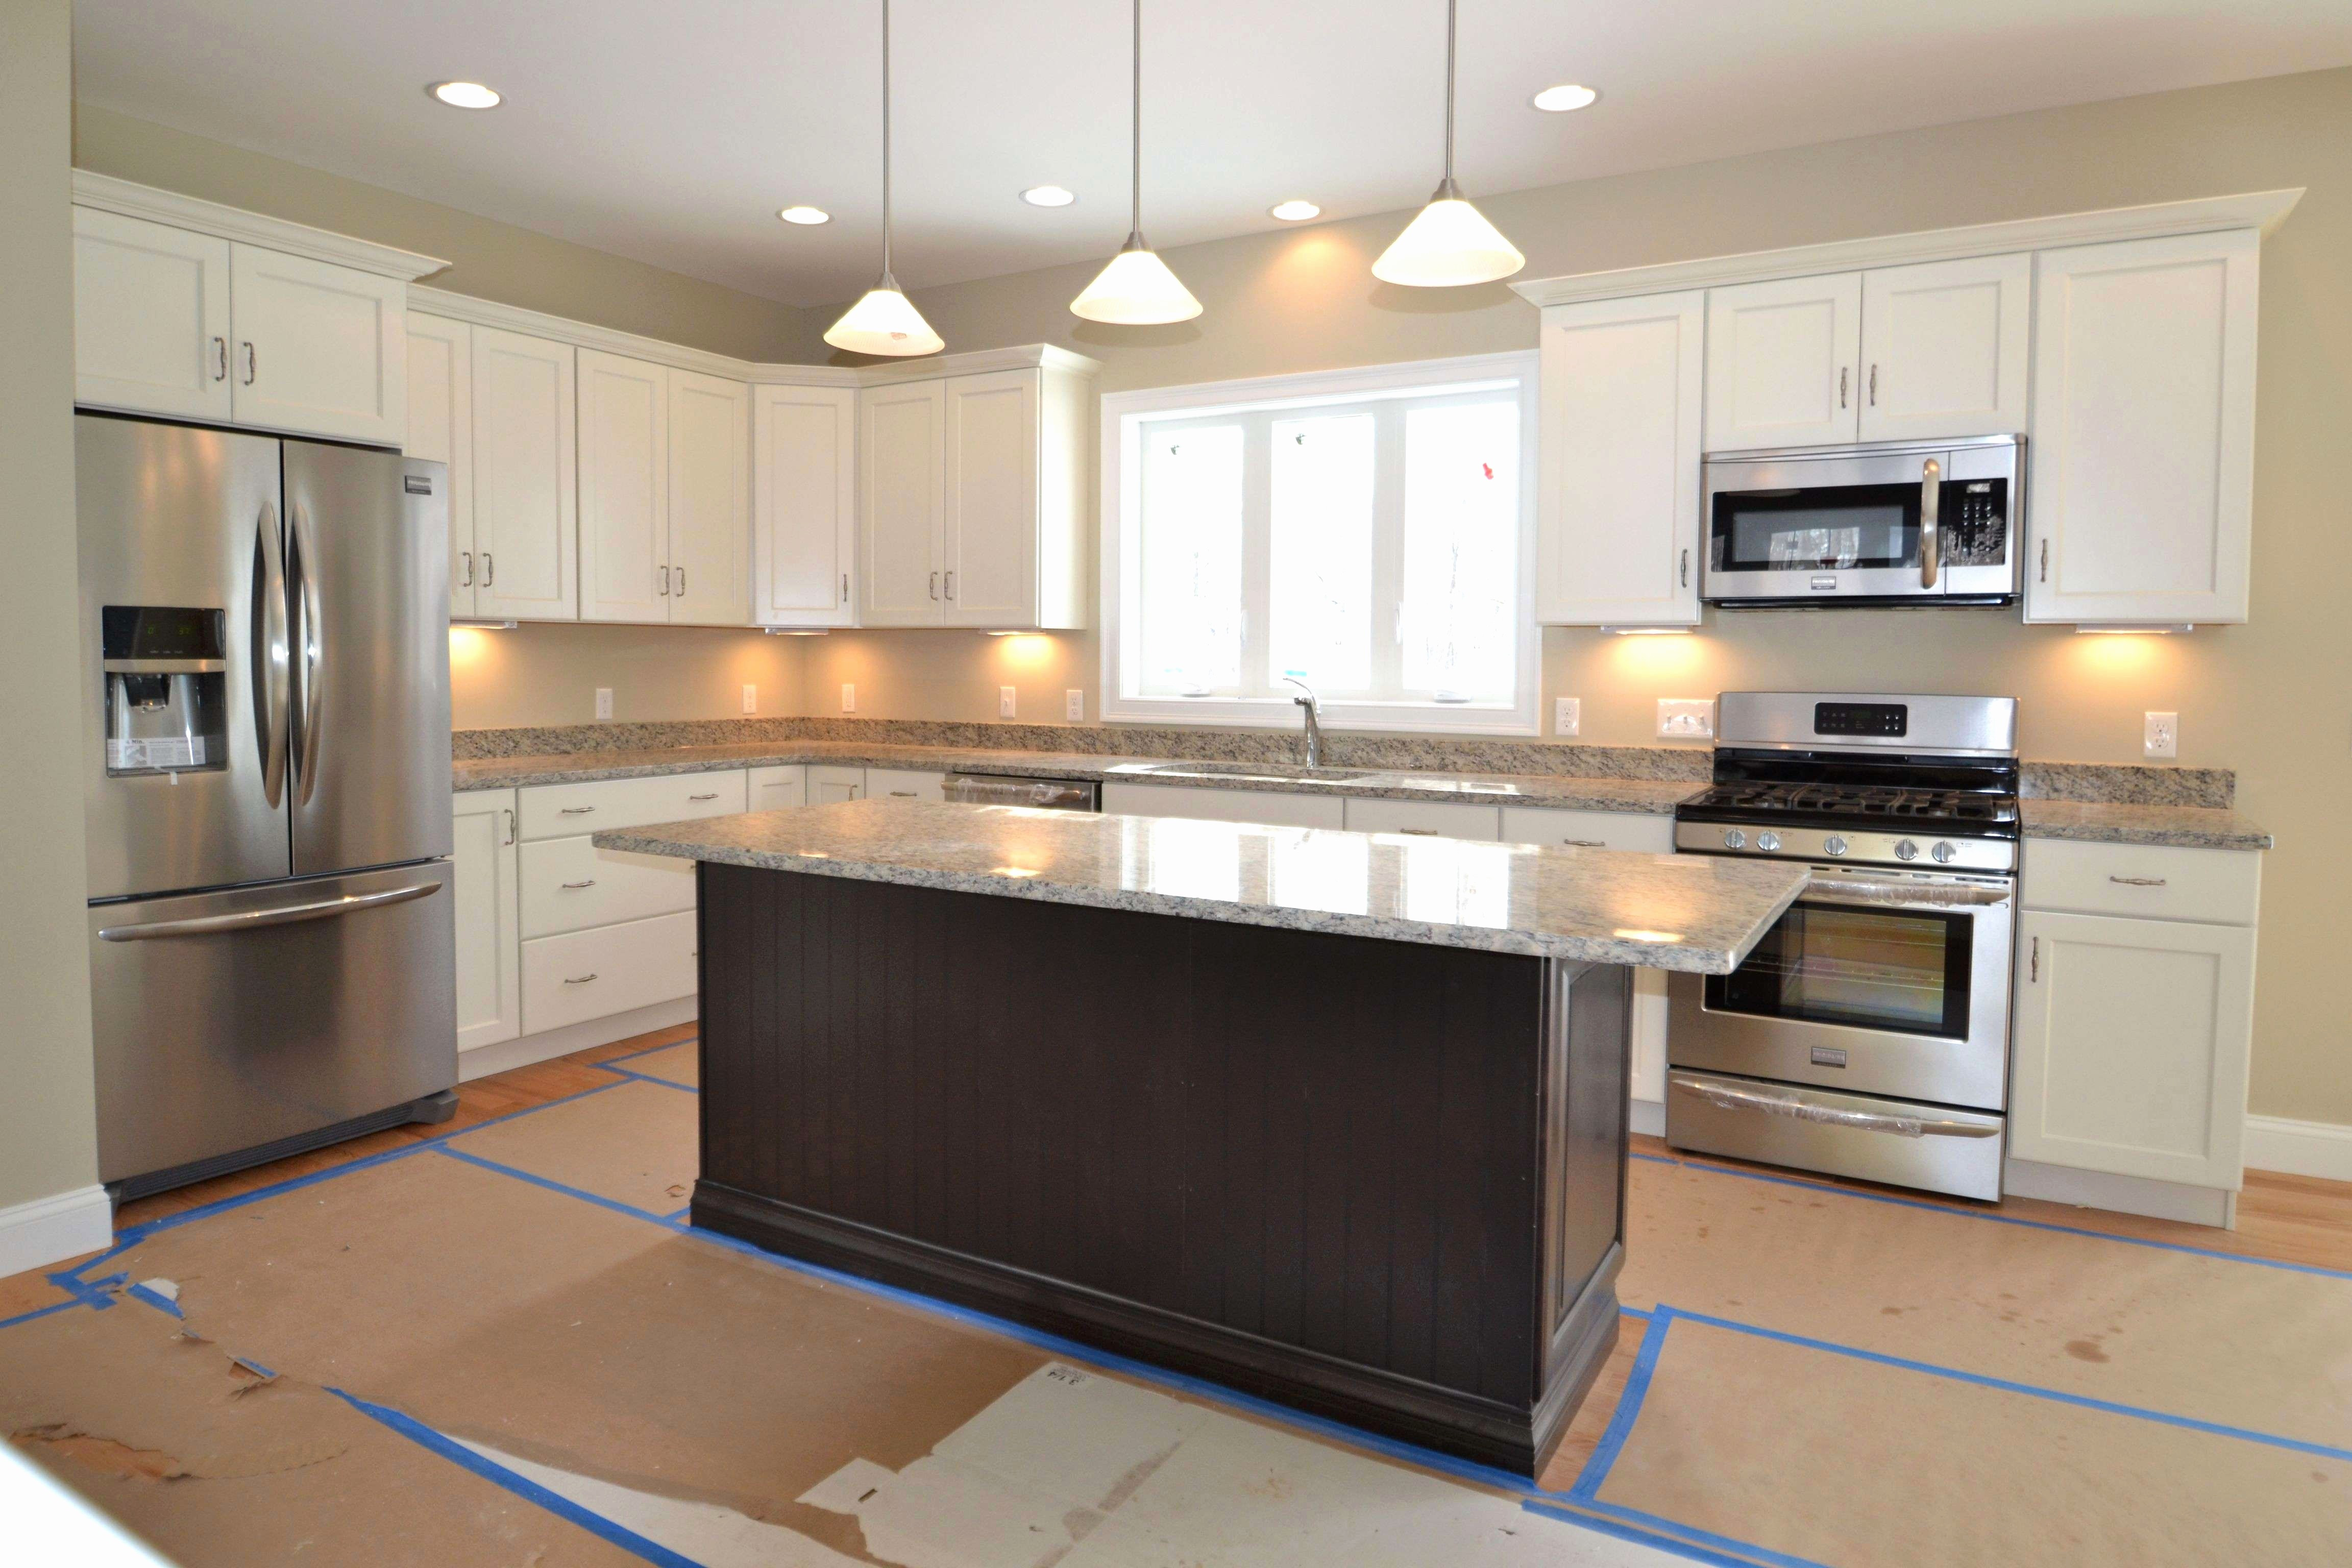 Kitchen Wall Colors With White Cabinets Accent Wall Color Ideas For Kitchen  Wood Color Paint For Kitchen Cabinets Kitchen Paint Colors Images